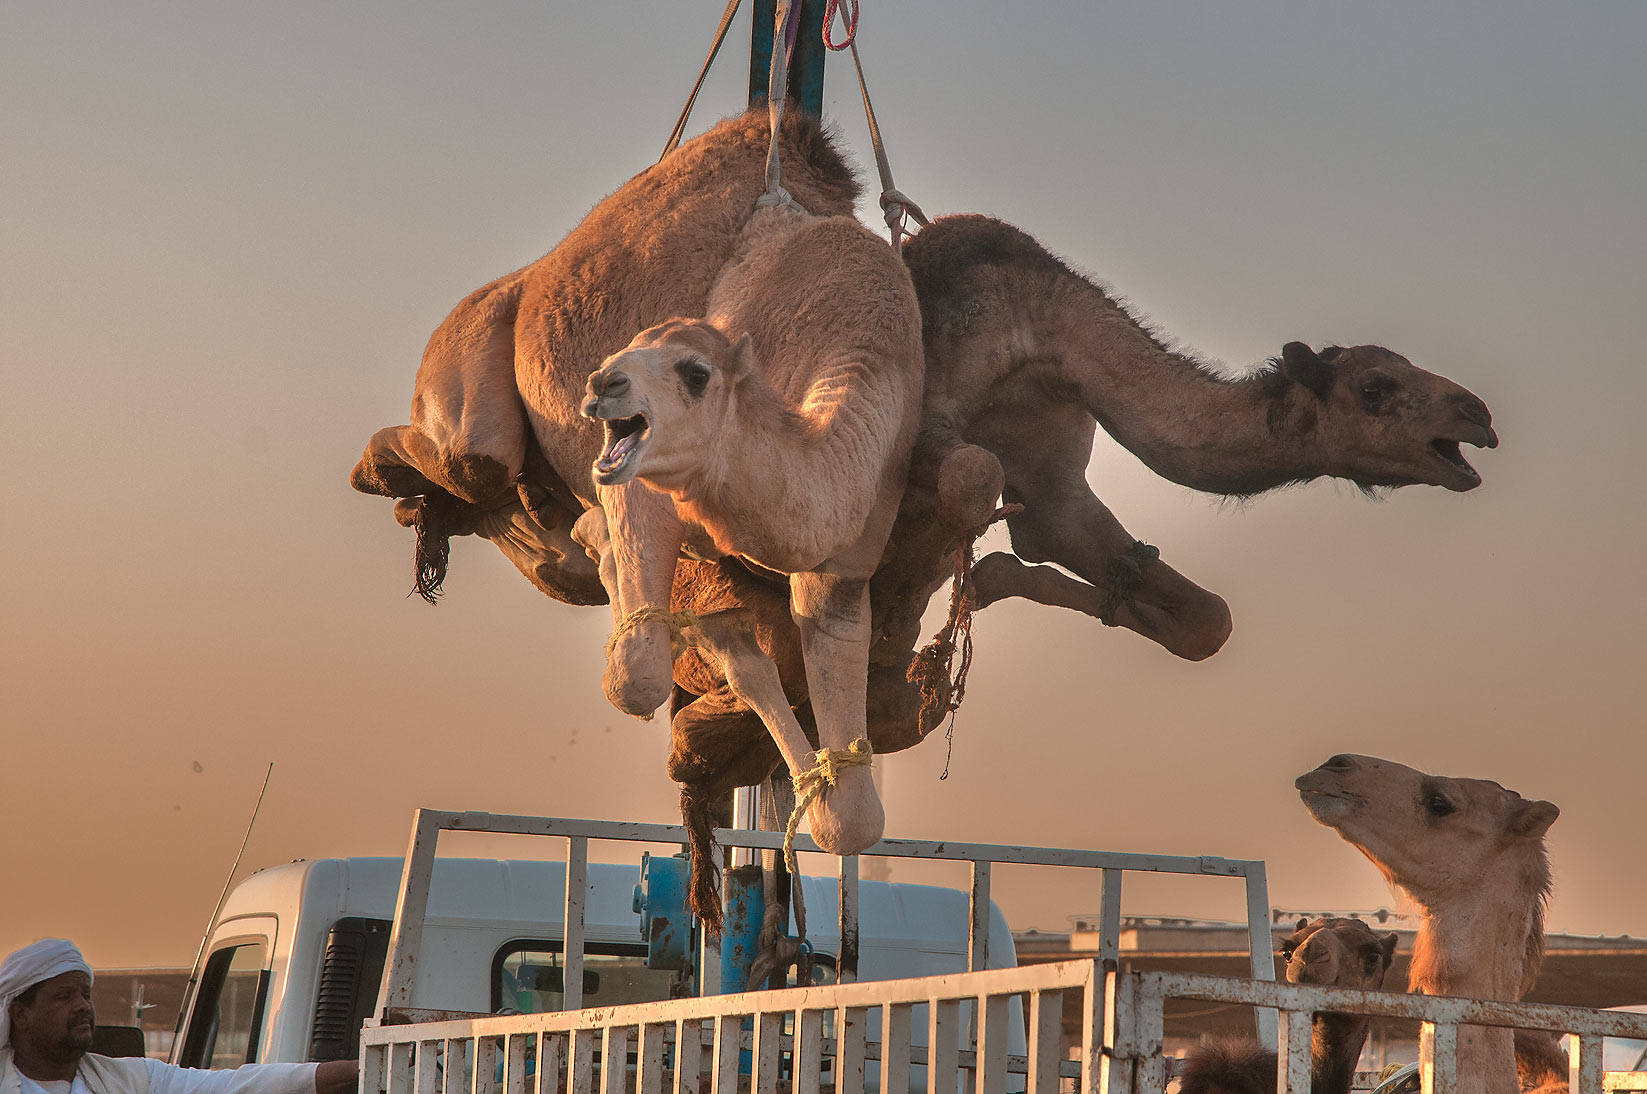 Pair of camels lifted by hydraulic crane in Camel Market, Abu Hamour area. Doha, Qatar